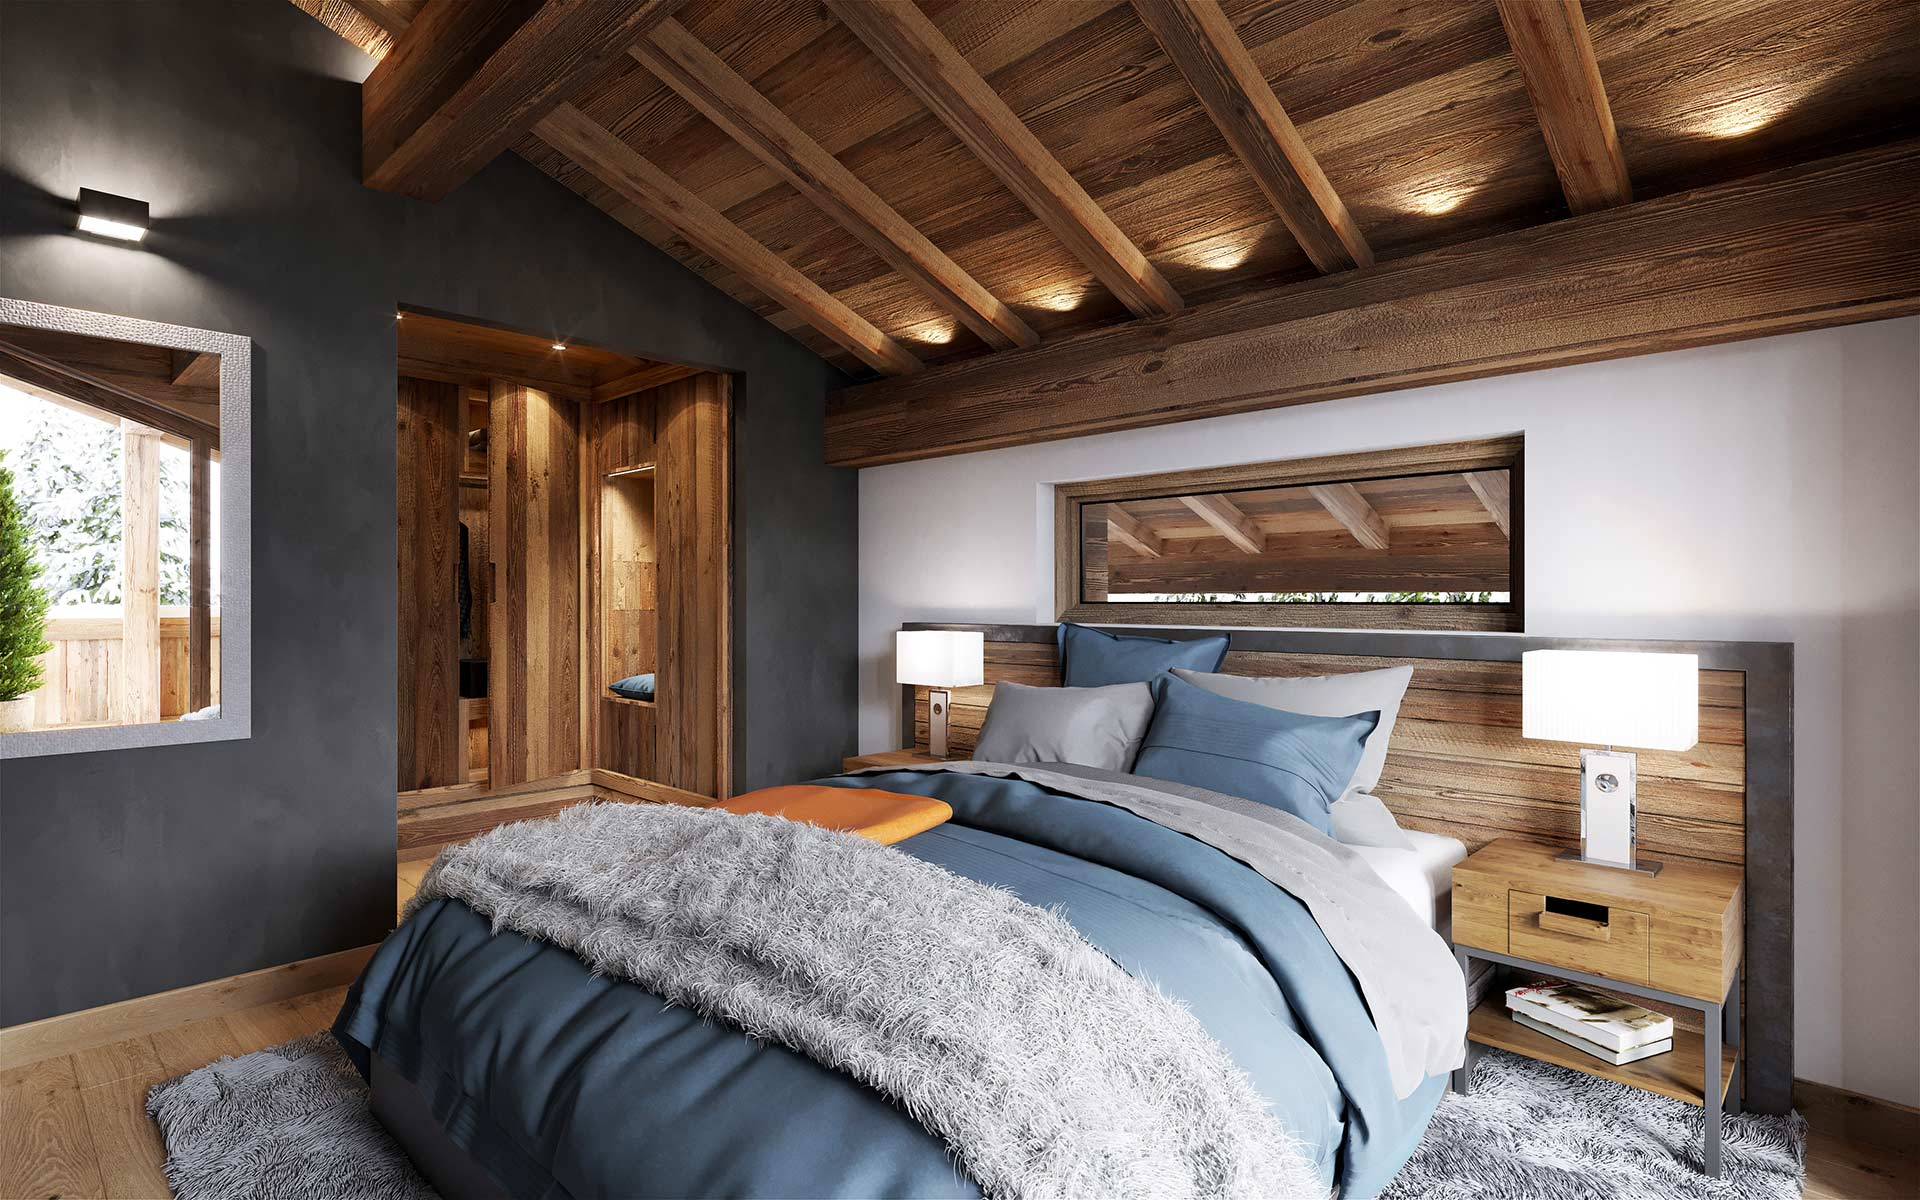 3D interior render of a luxury room in a Chalet